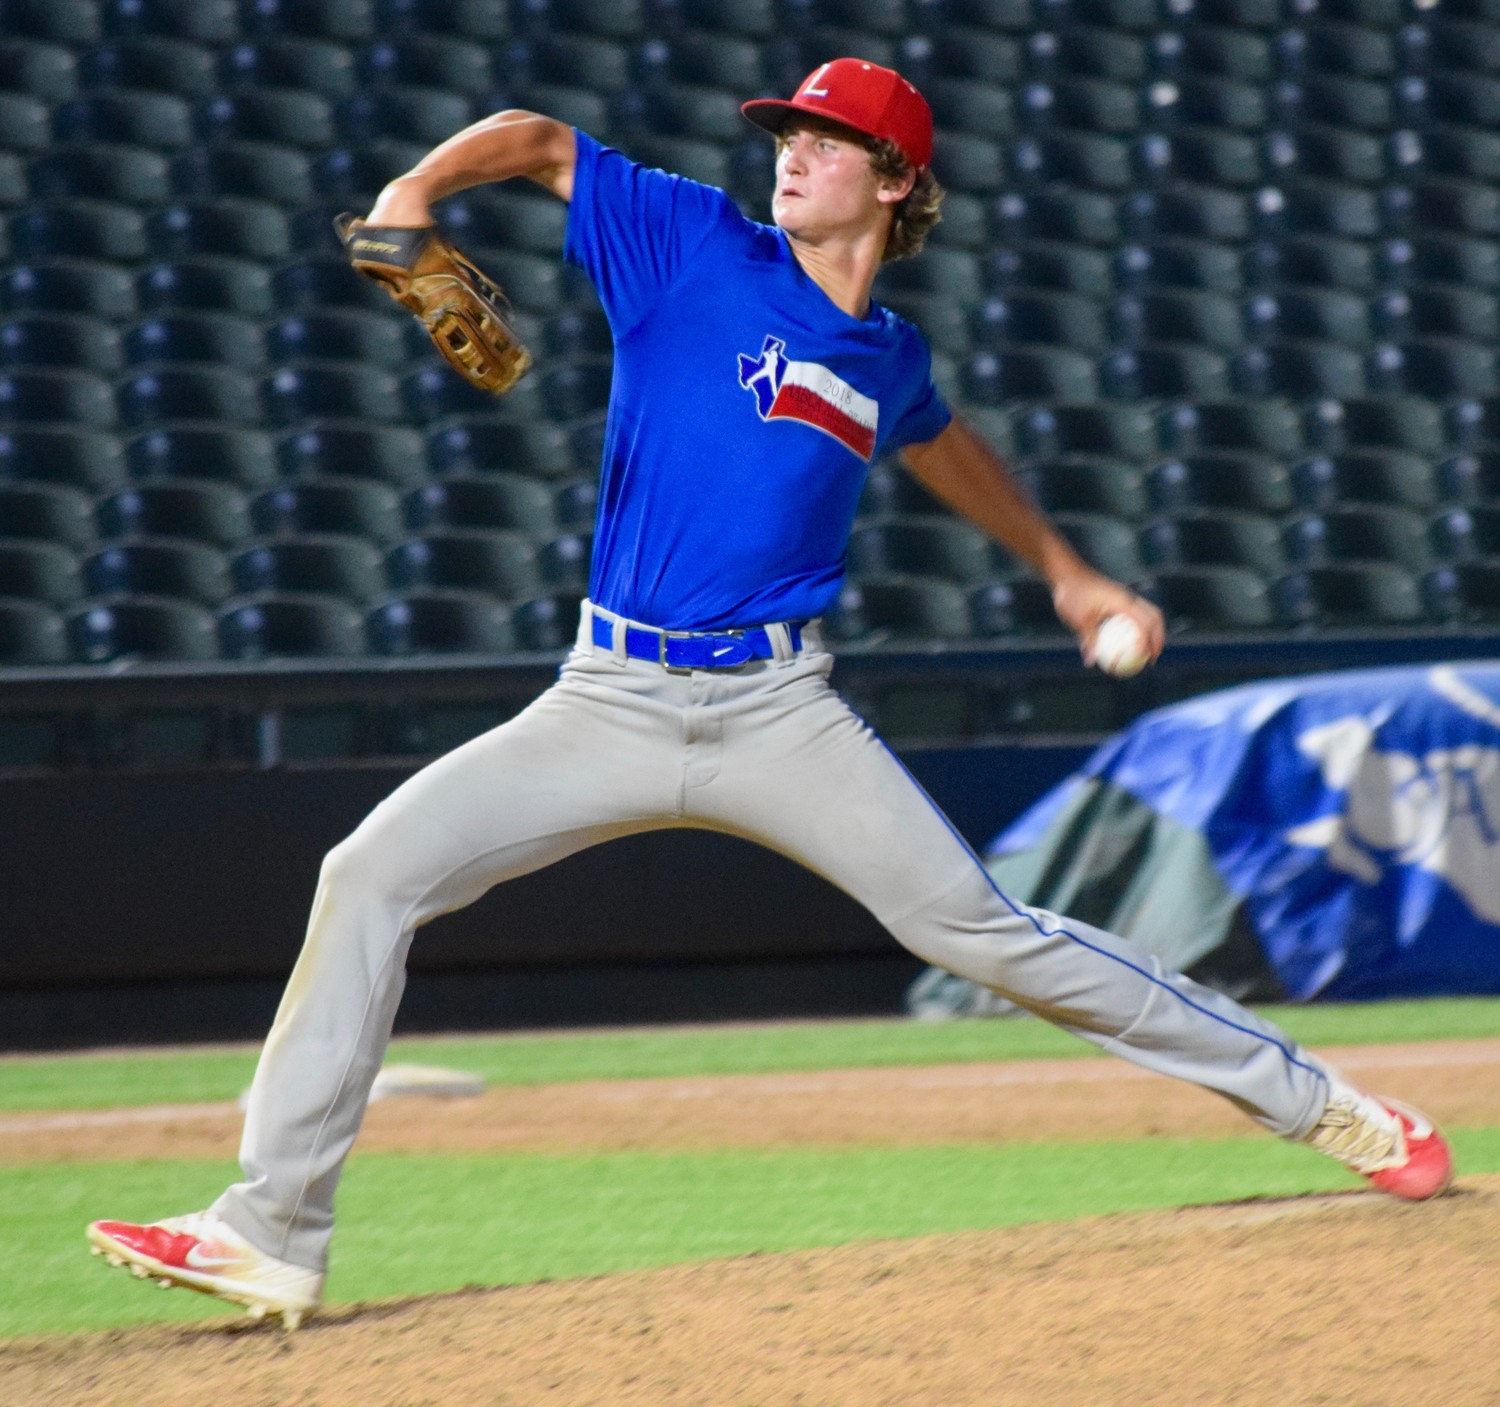 Leander's Mason Montgomery participated in the Austin Area Baseball Coaches Association All-Star Game Saturday at Dell Diamond. His North team beat the South 21-5.